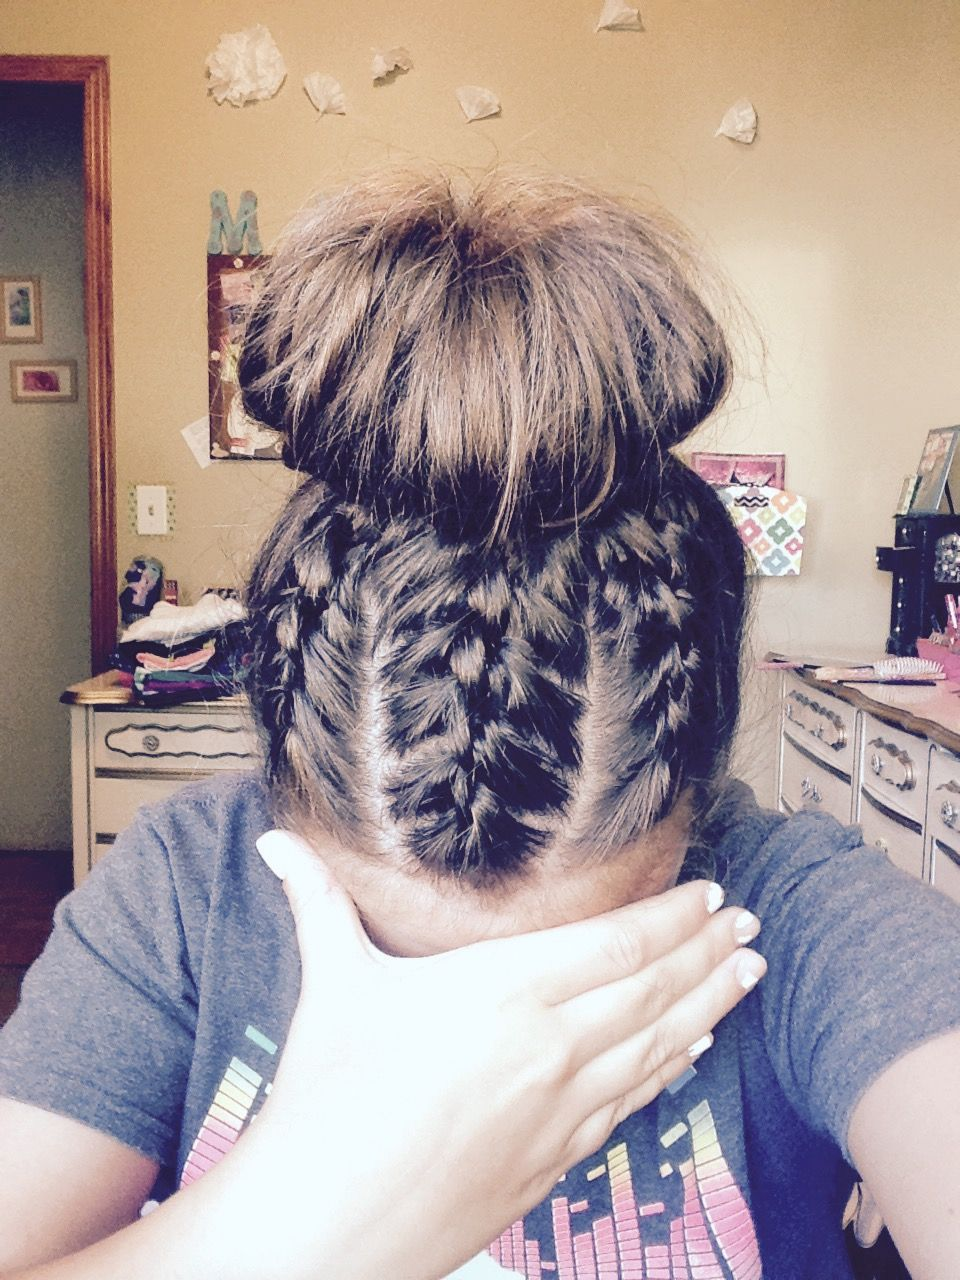 love this knotted hairstyle!! great for summer camping and